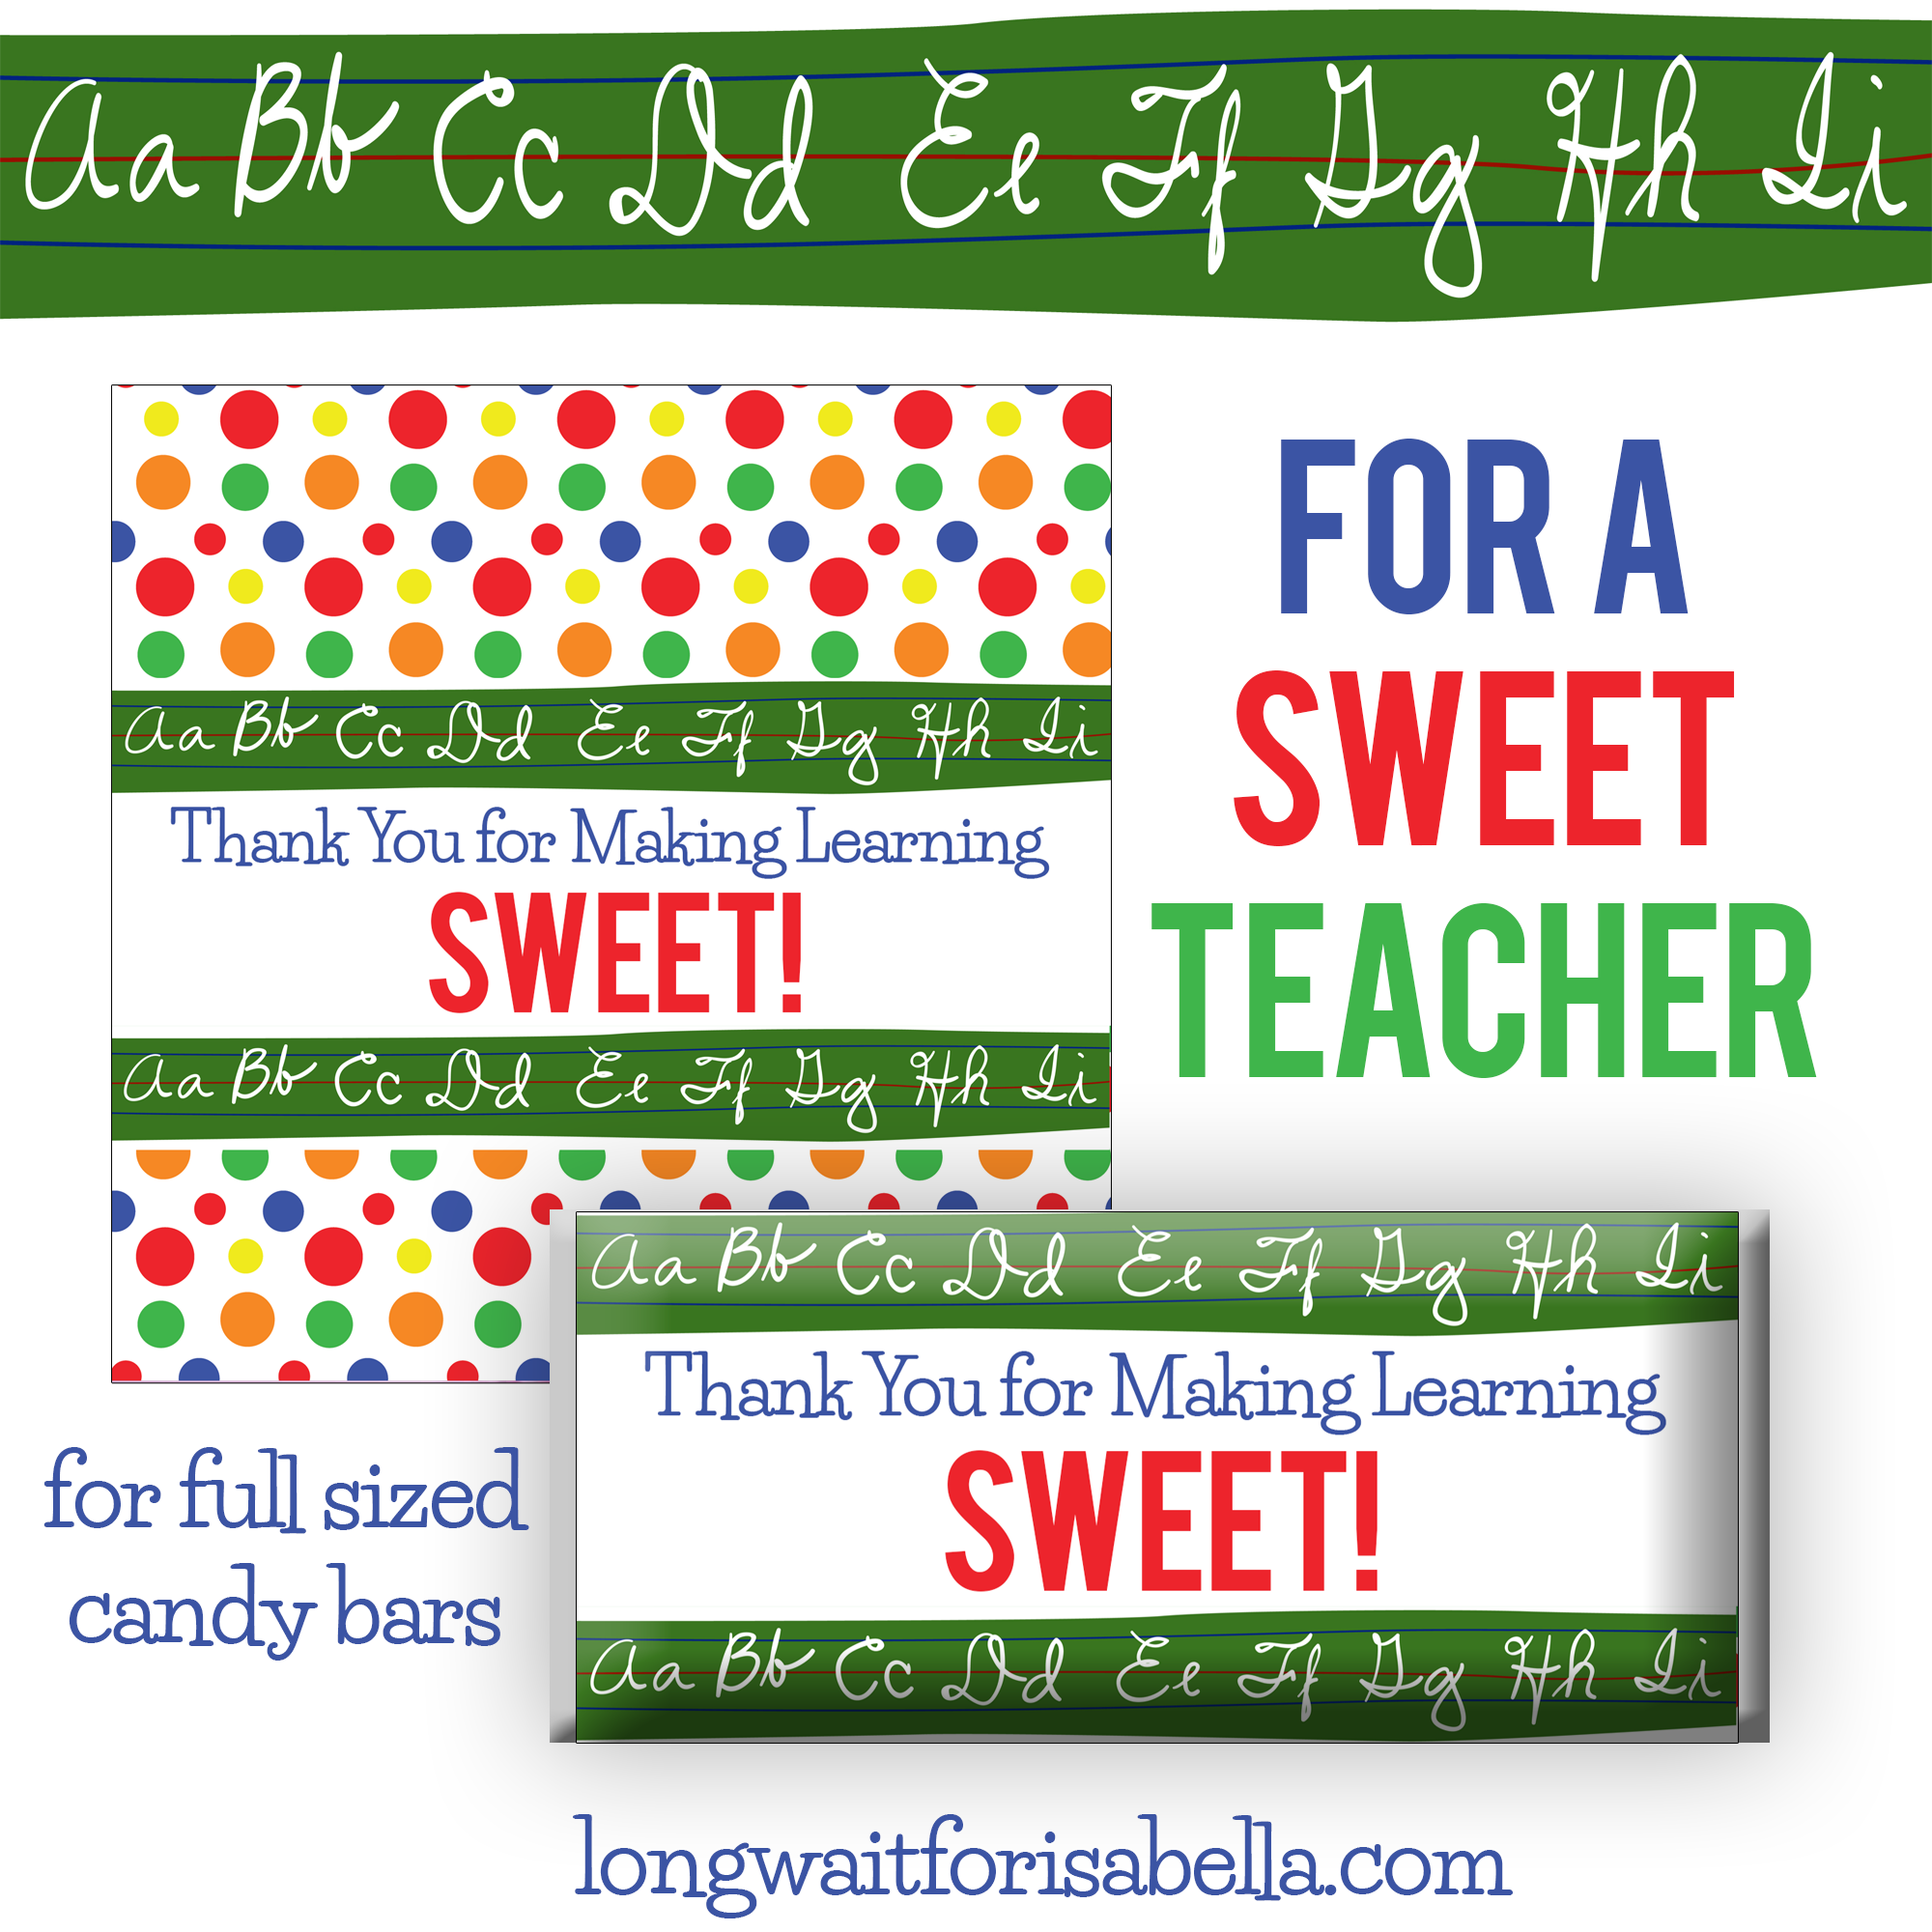 graphic relating to Printable Hershey Bar Wrappers called Trainer Appreciation Sweet Bar Wrapper Printable